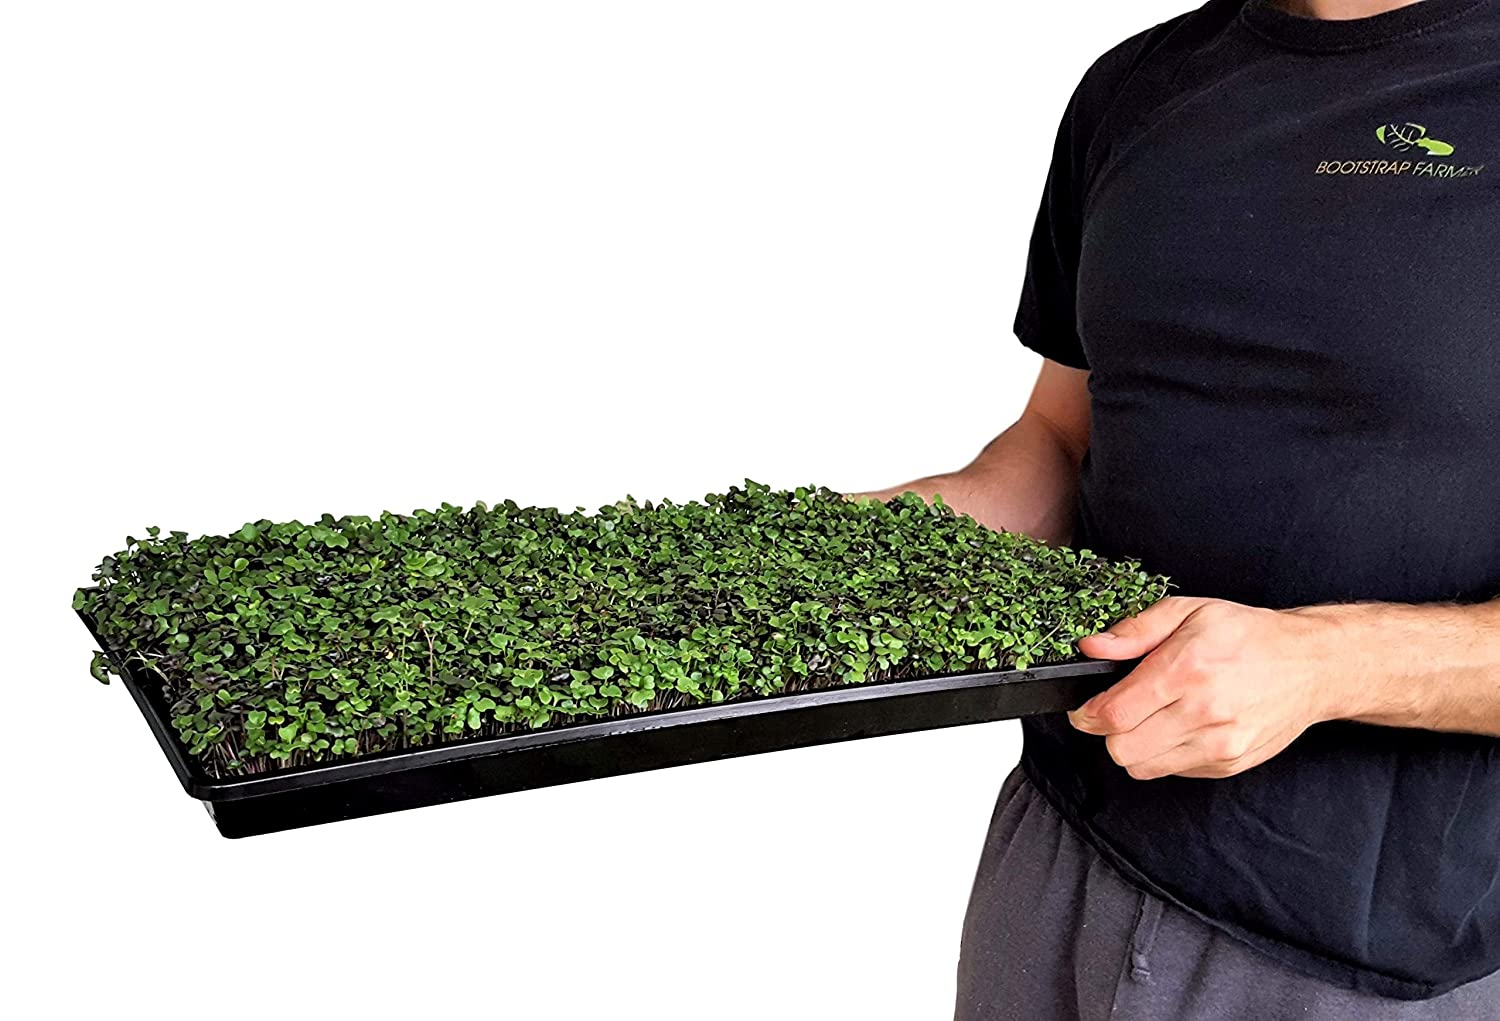 Microgreen Trays No Holes, 5 Pack, Extra Strength Black Shallow 1020 Tray Grow Microgreens Wheatgrass Fodder Sprouting Plants